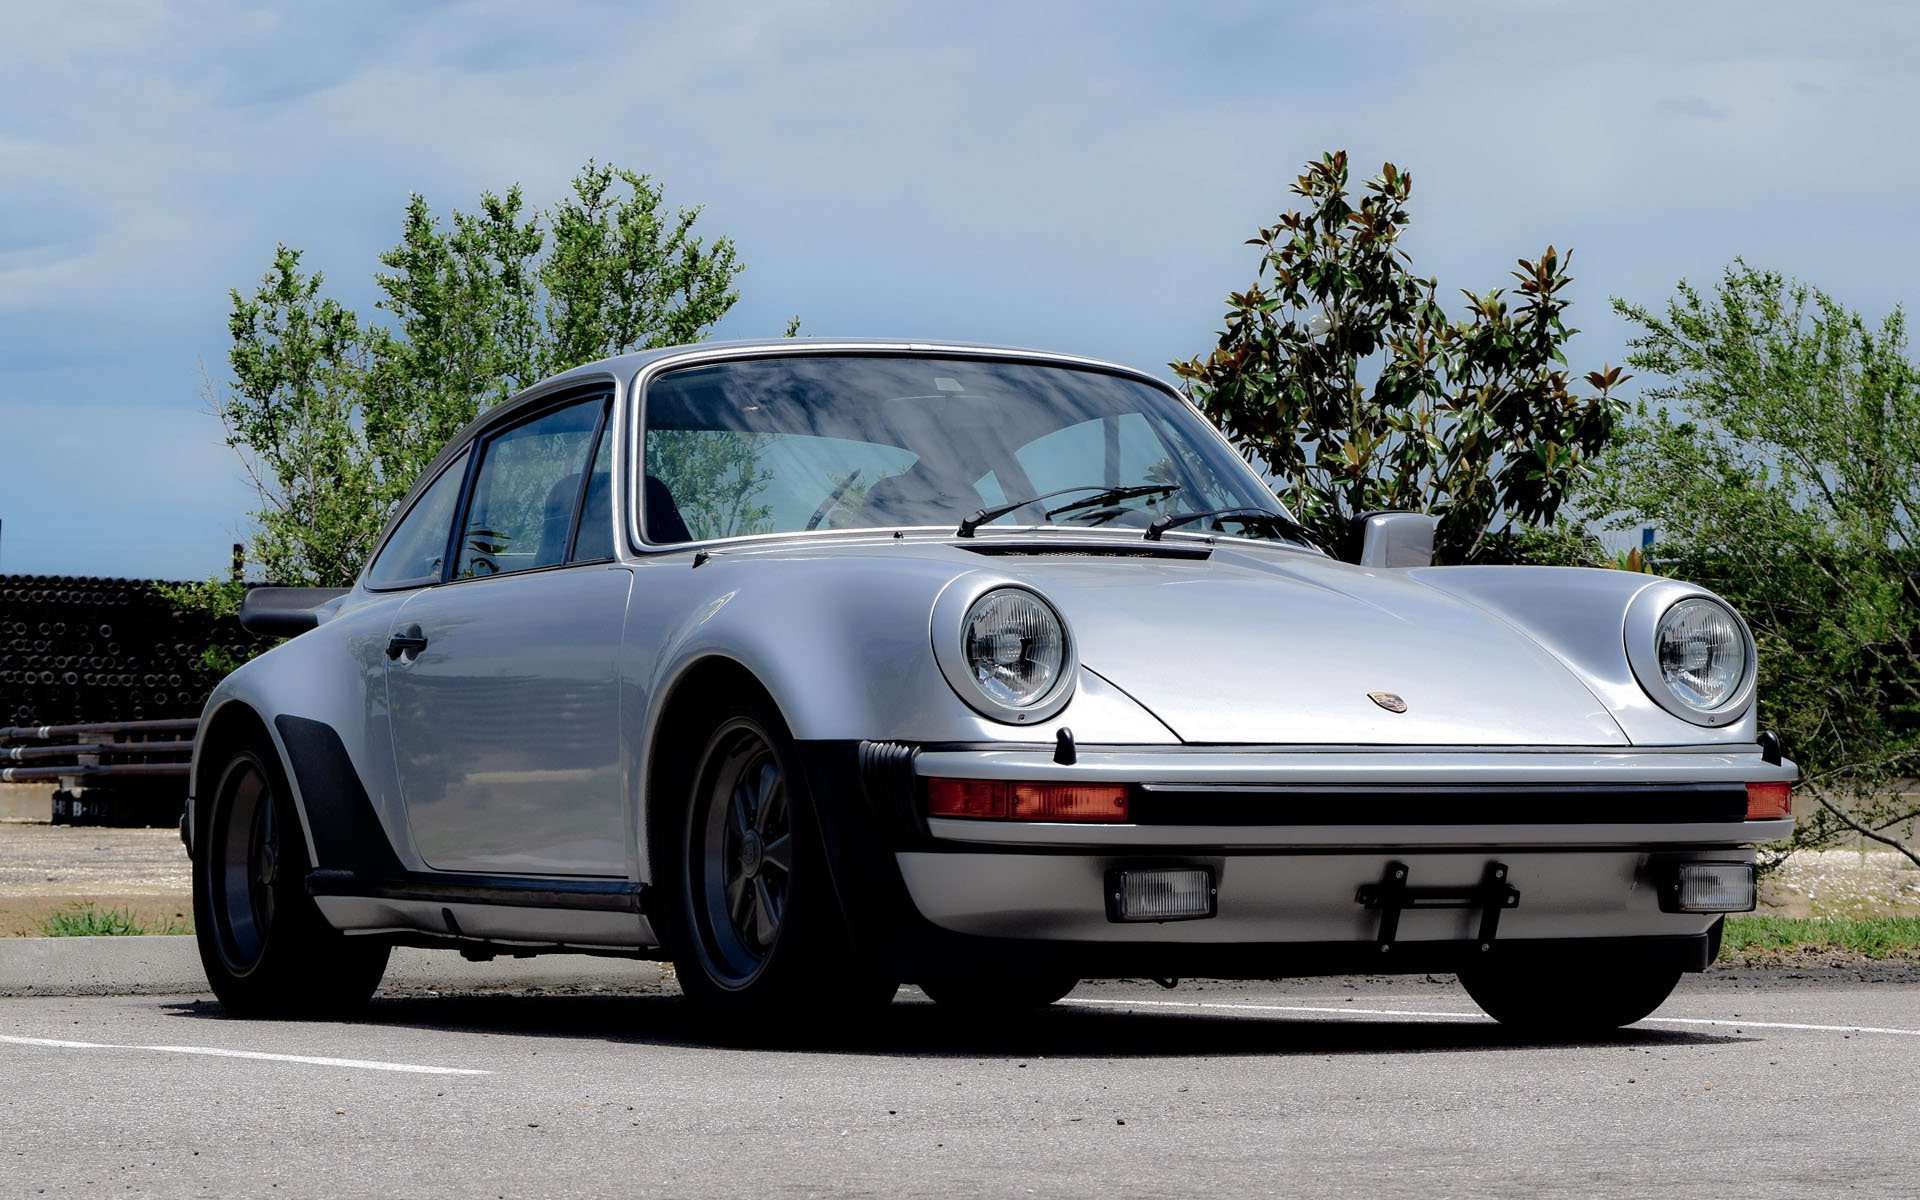 Porsche 911 Turbo Silver Porsche Of The Month 2015